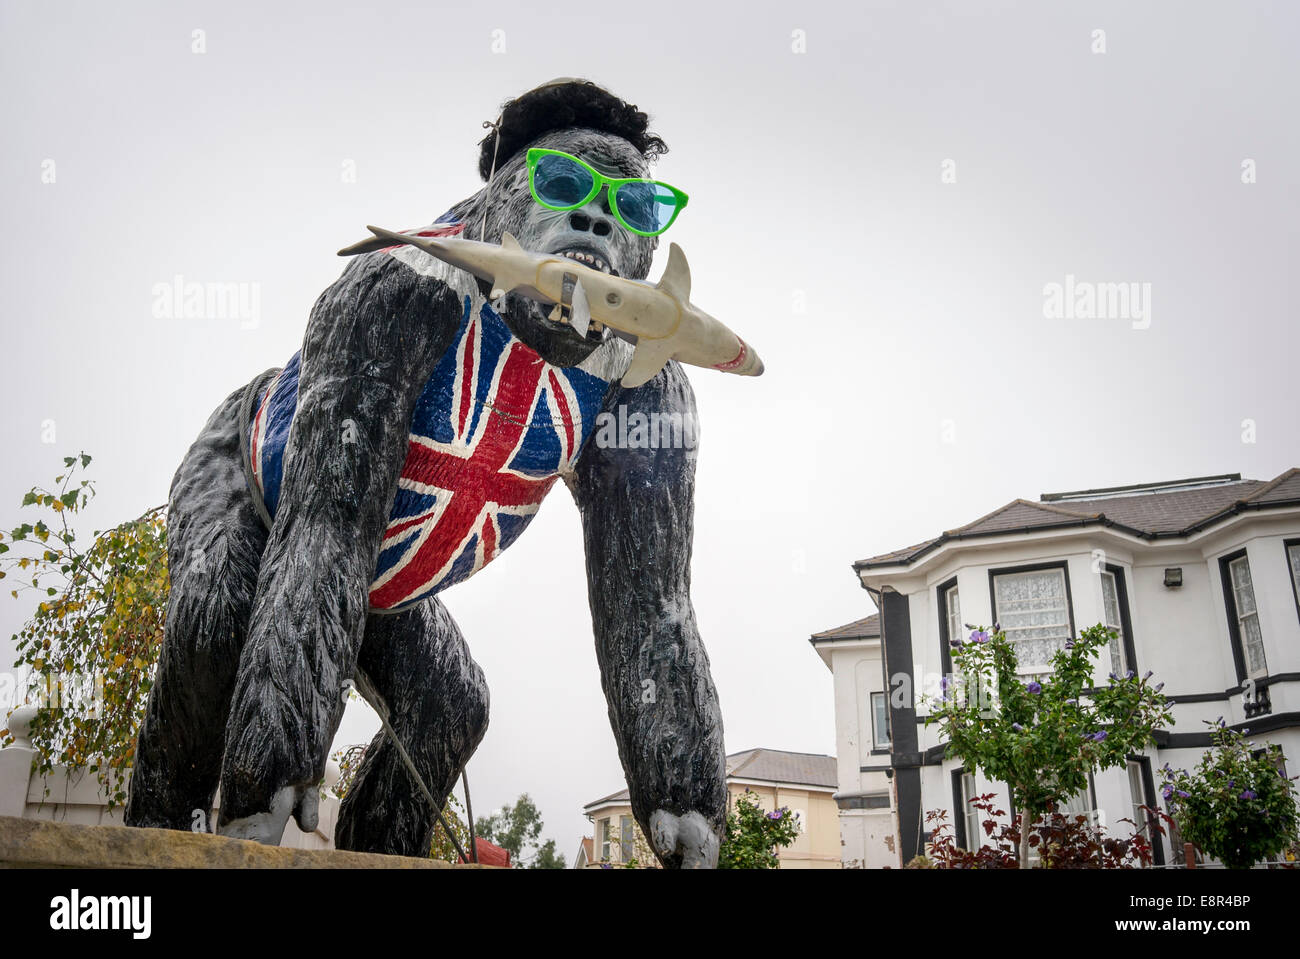 Grotesque gorilla wearing Union Jack peering over a guest house wall - Stock Image